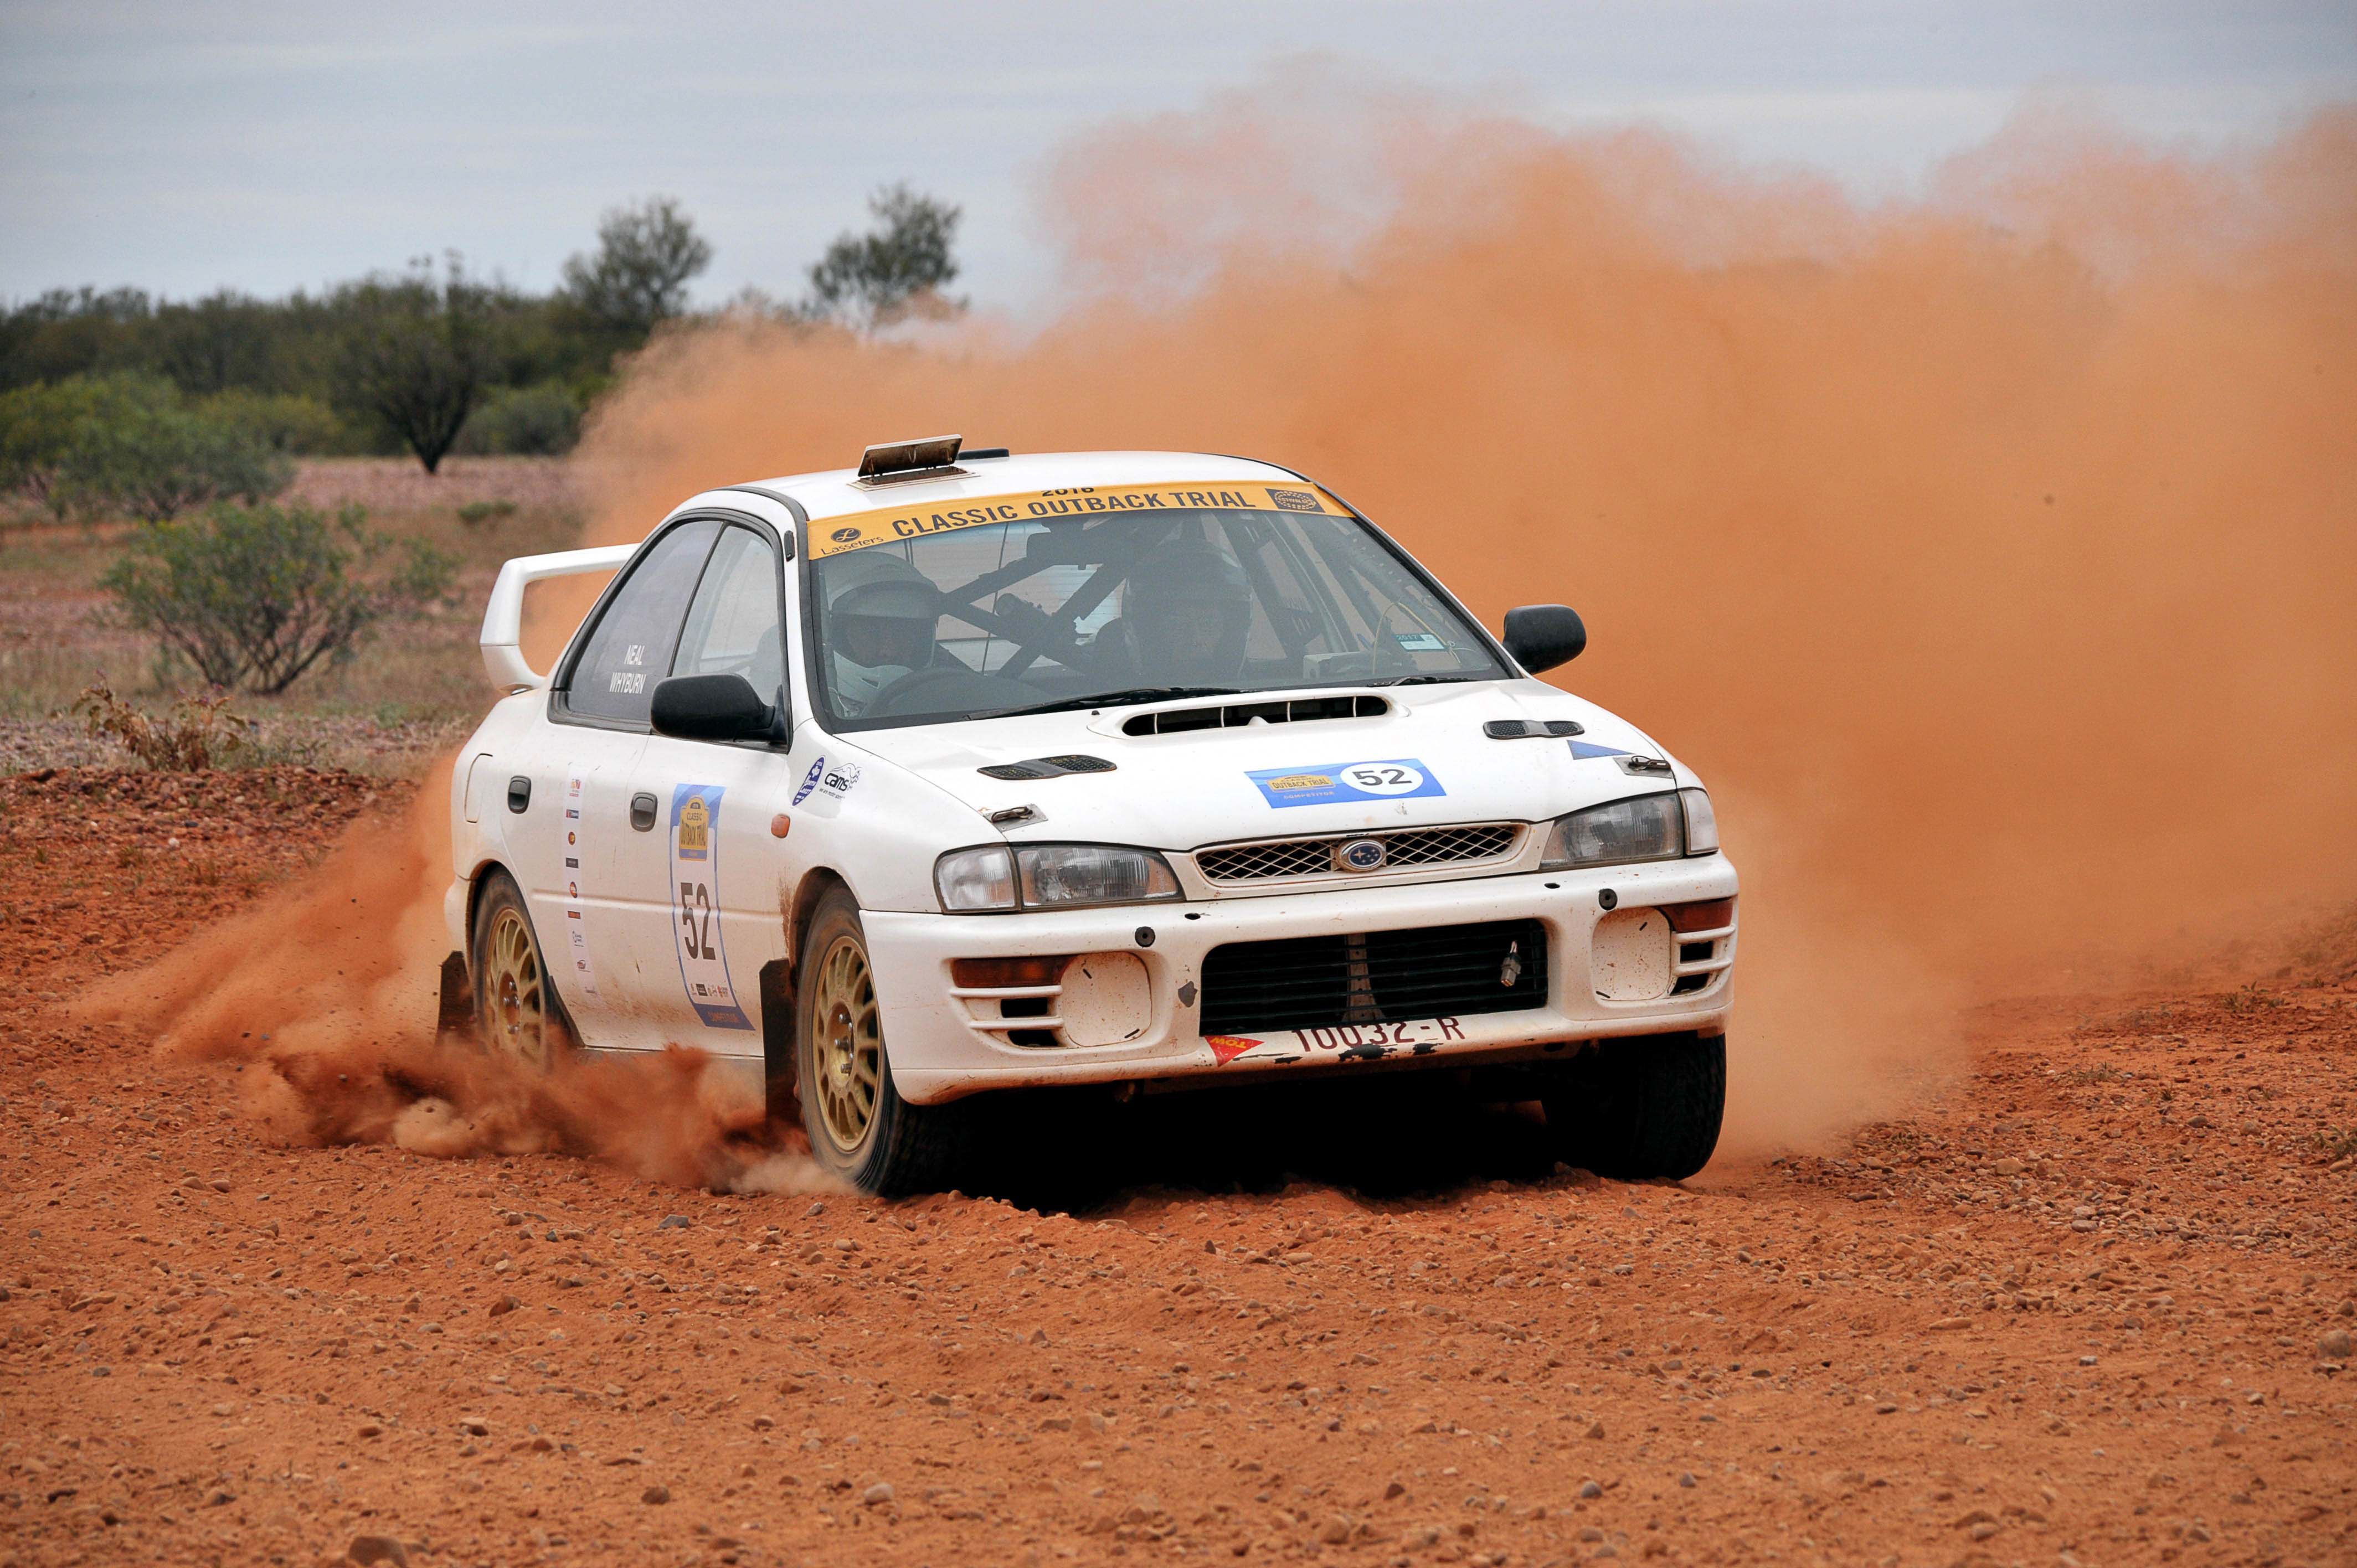 Modern Rally Cars Eligible for Classic Outback Trial - The Deadline ...